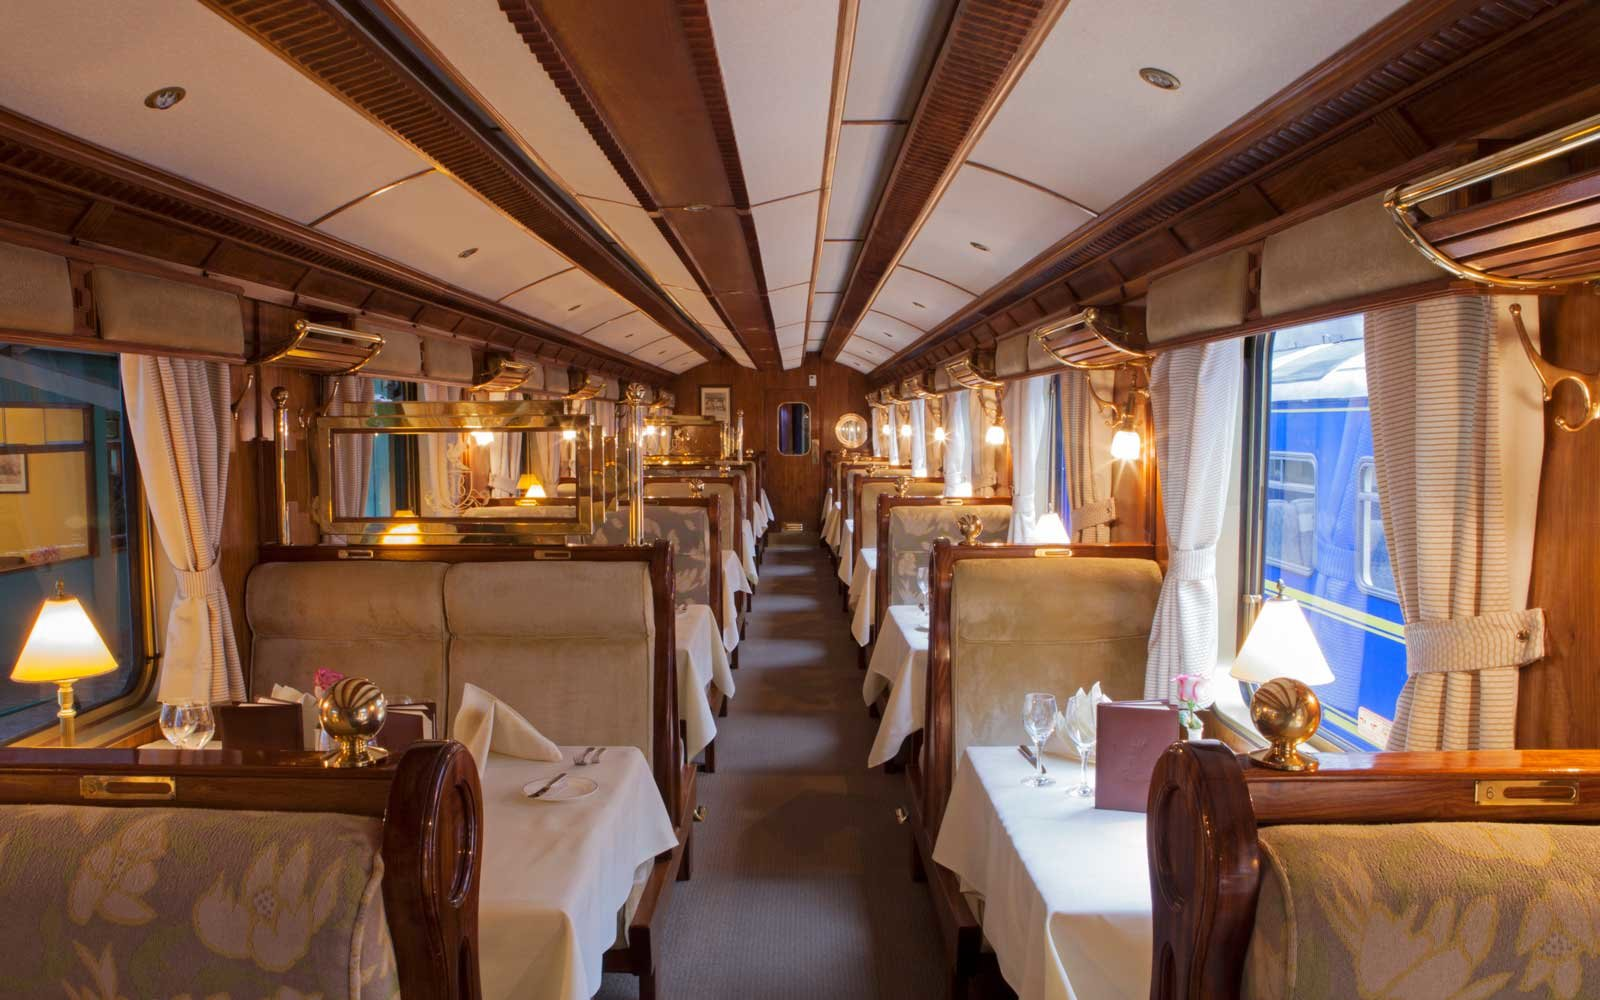 Clone of hiram-bingham-orient-express-dining-car-60STRIPS0918.jpg